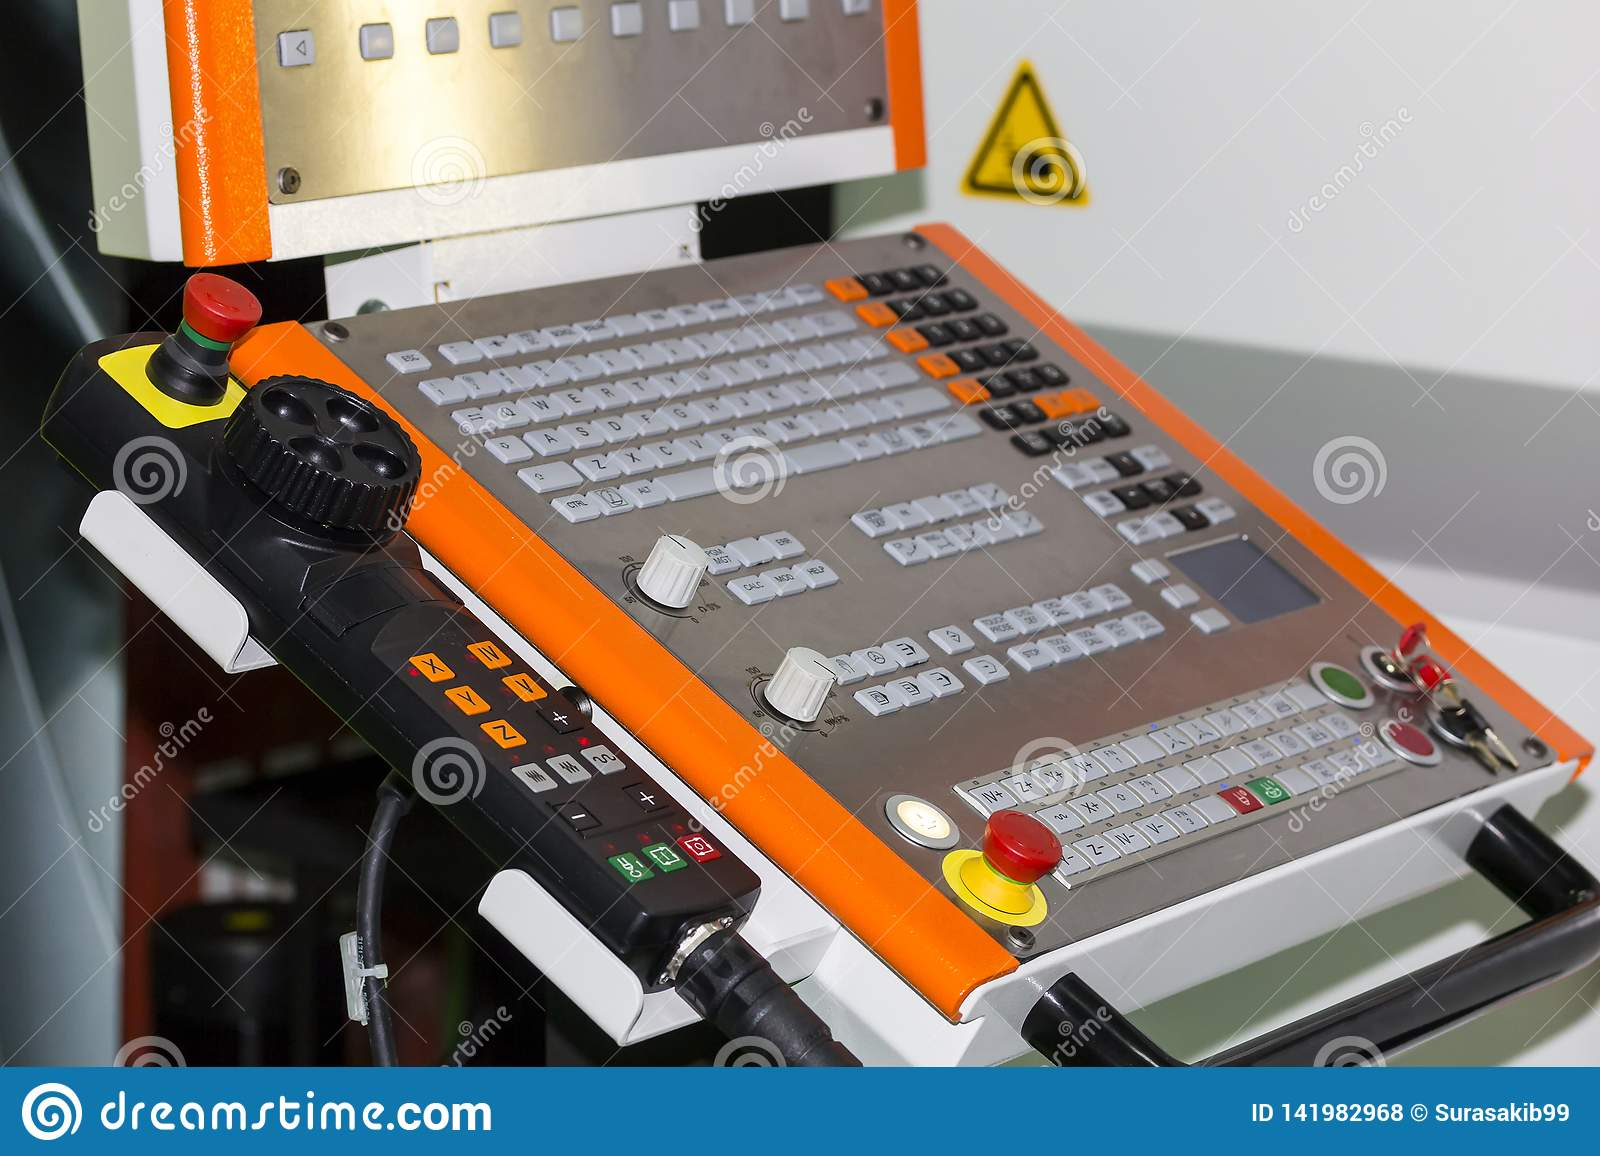 Control panel of cnc machining center at workshop